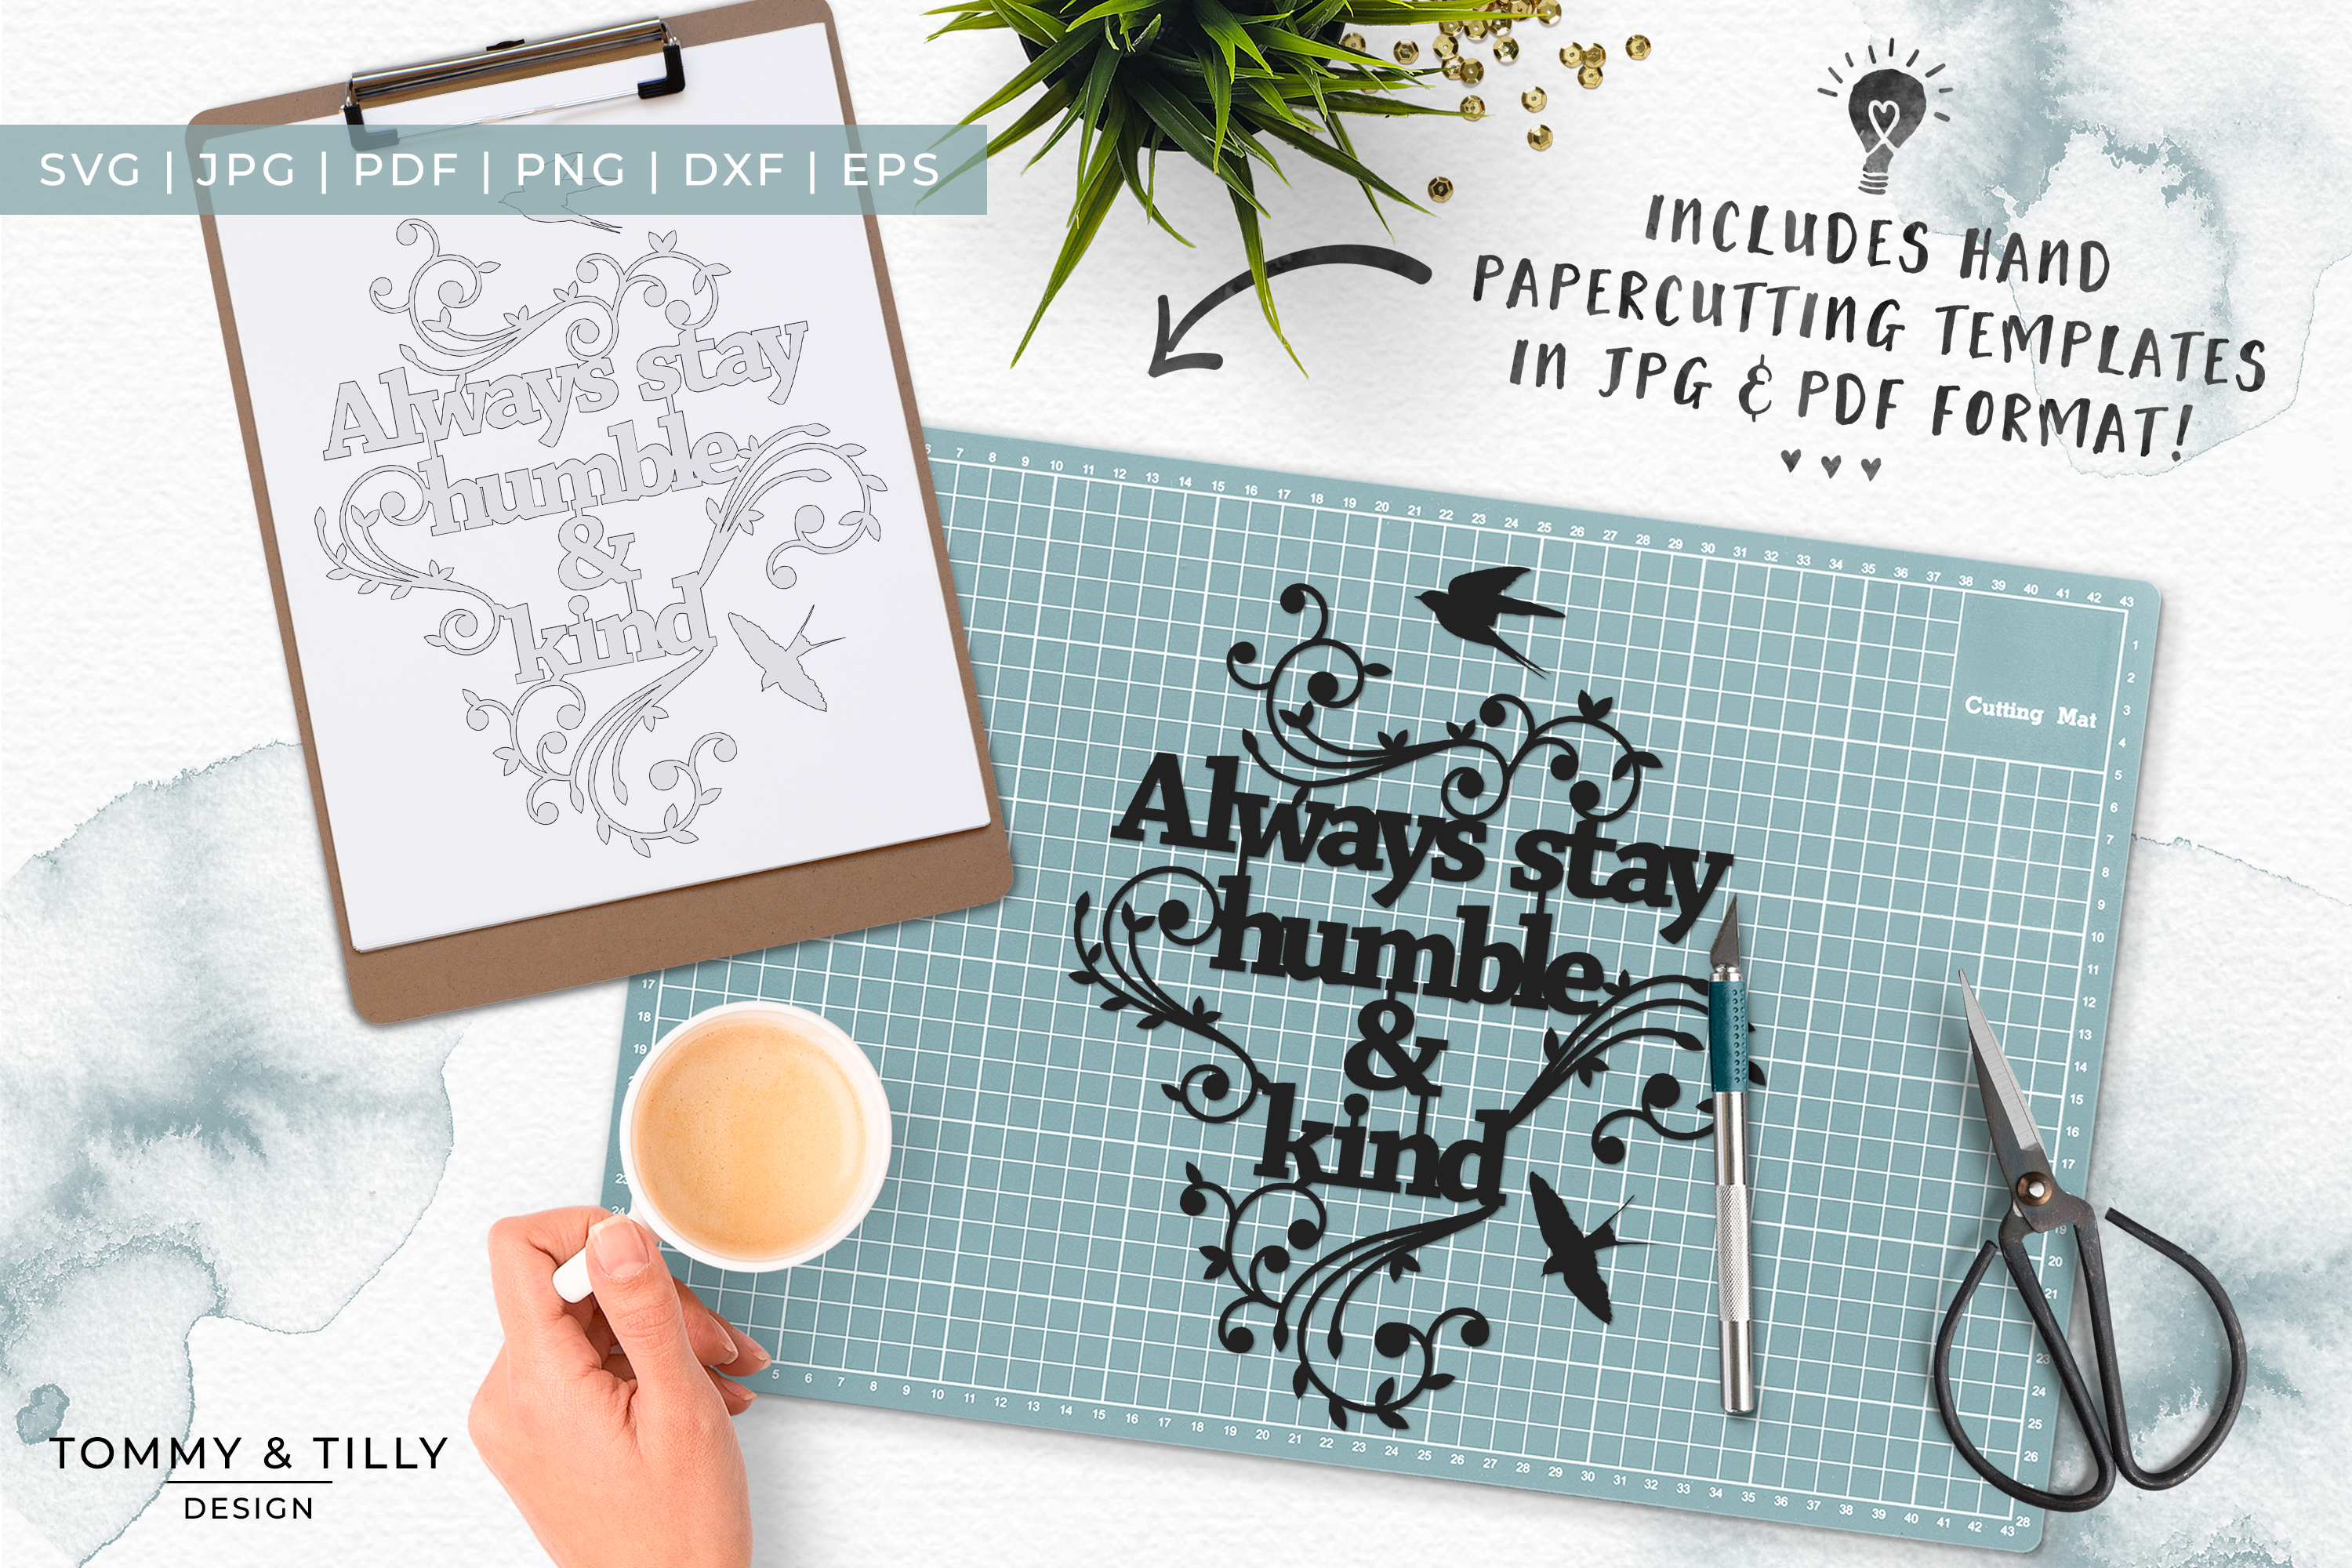 Always stay humble & kind - Papercut SVG EPS DXF PNG PDF example image 6